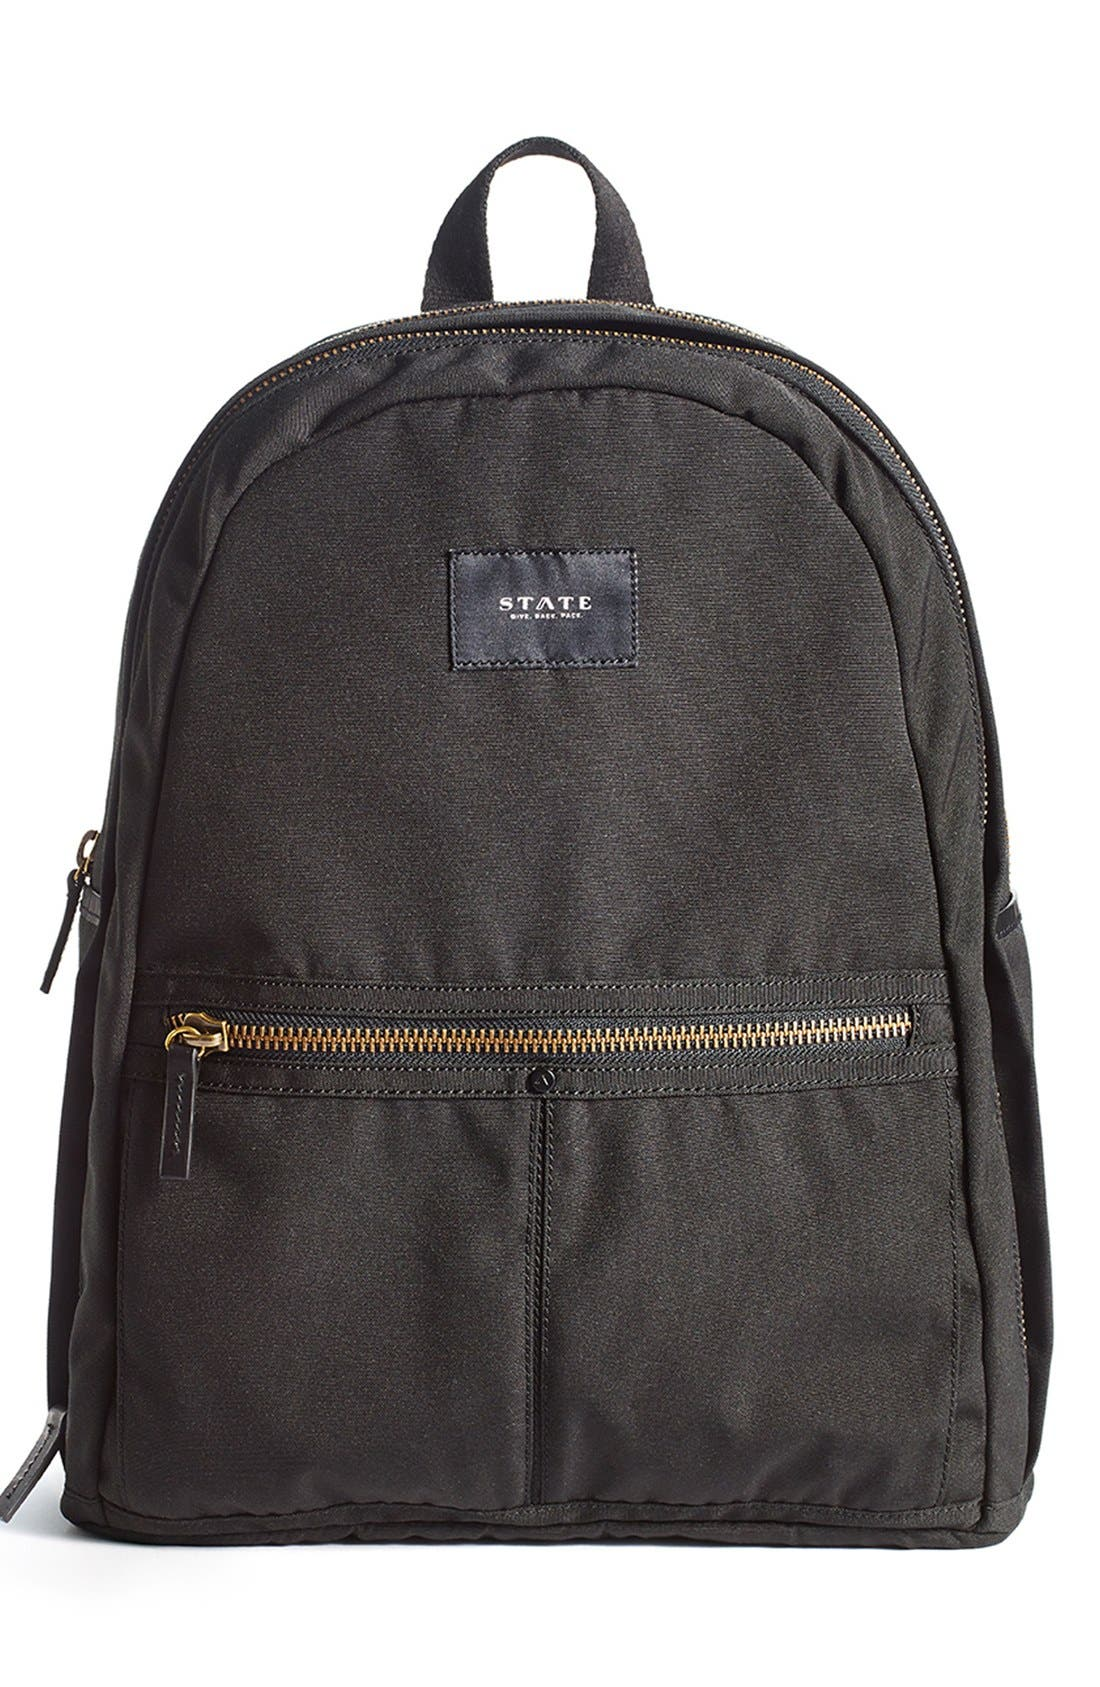 'Union' Water Resistant Backpack with Leather Trim, Main, color, 001